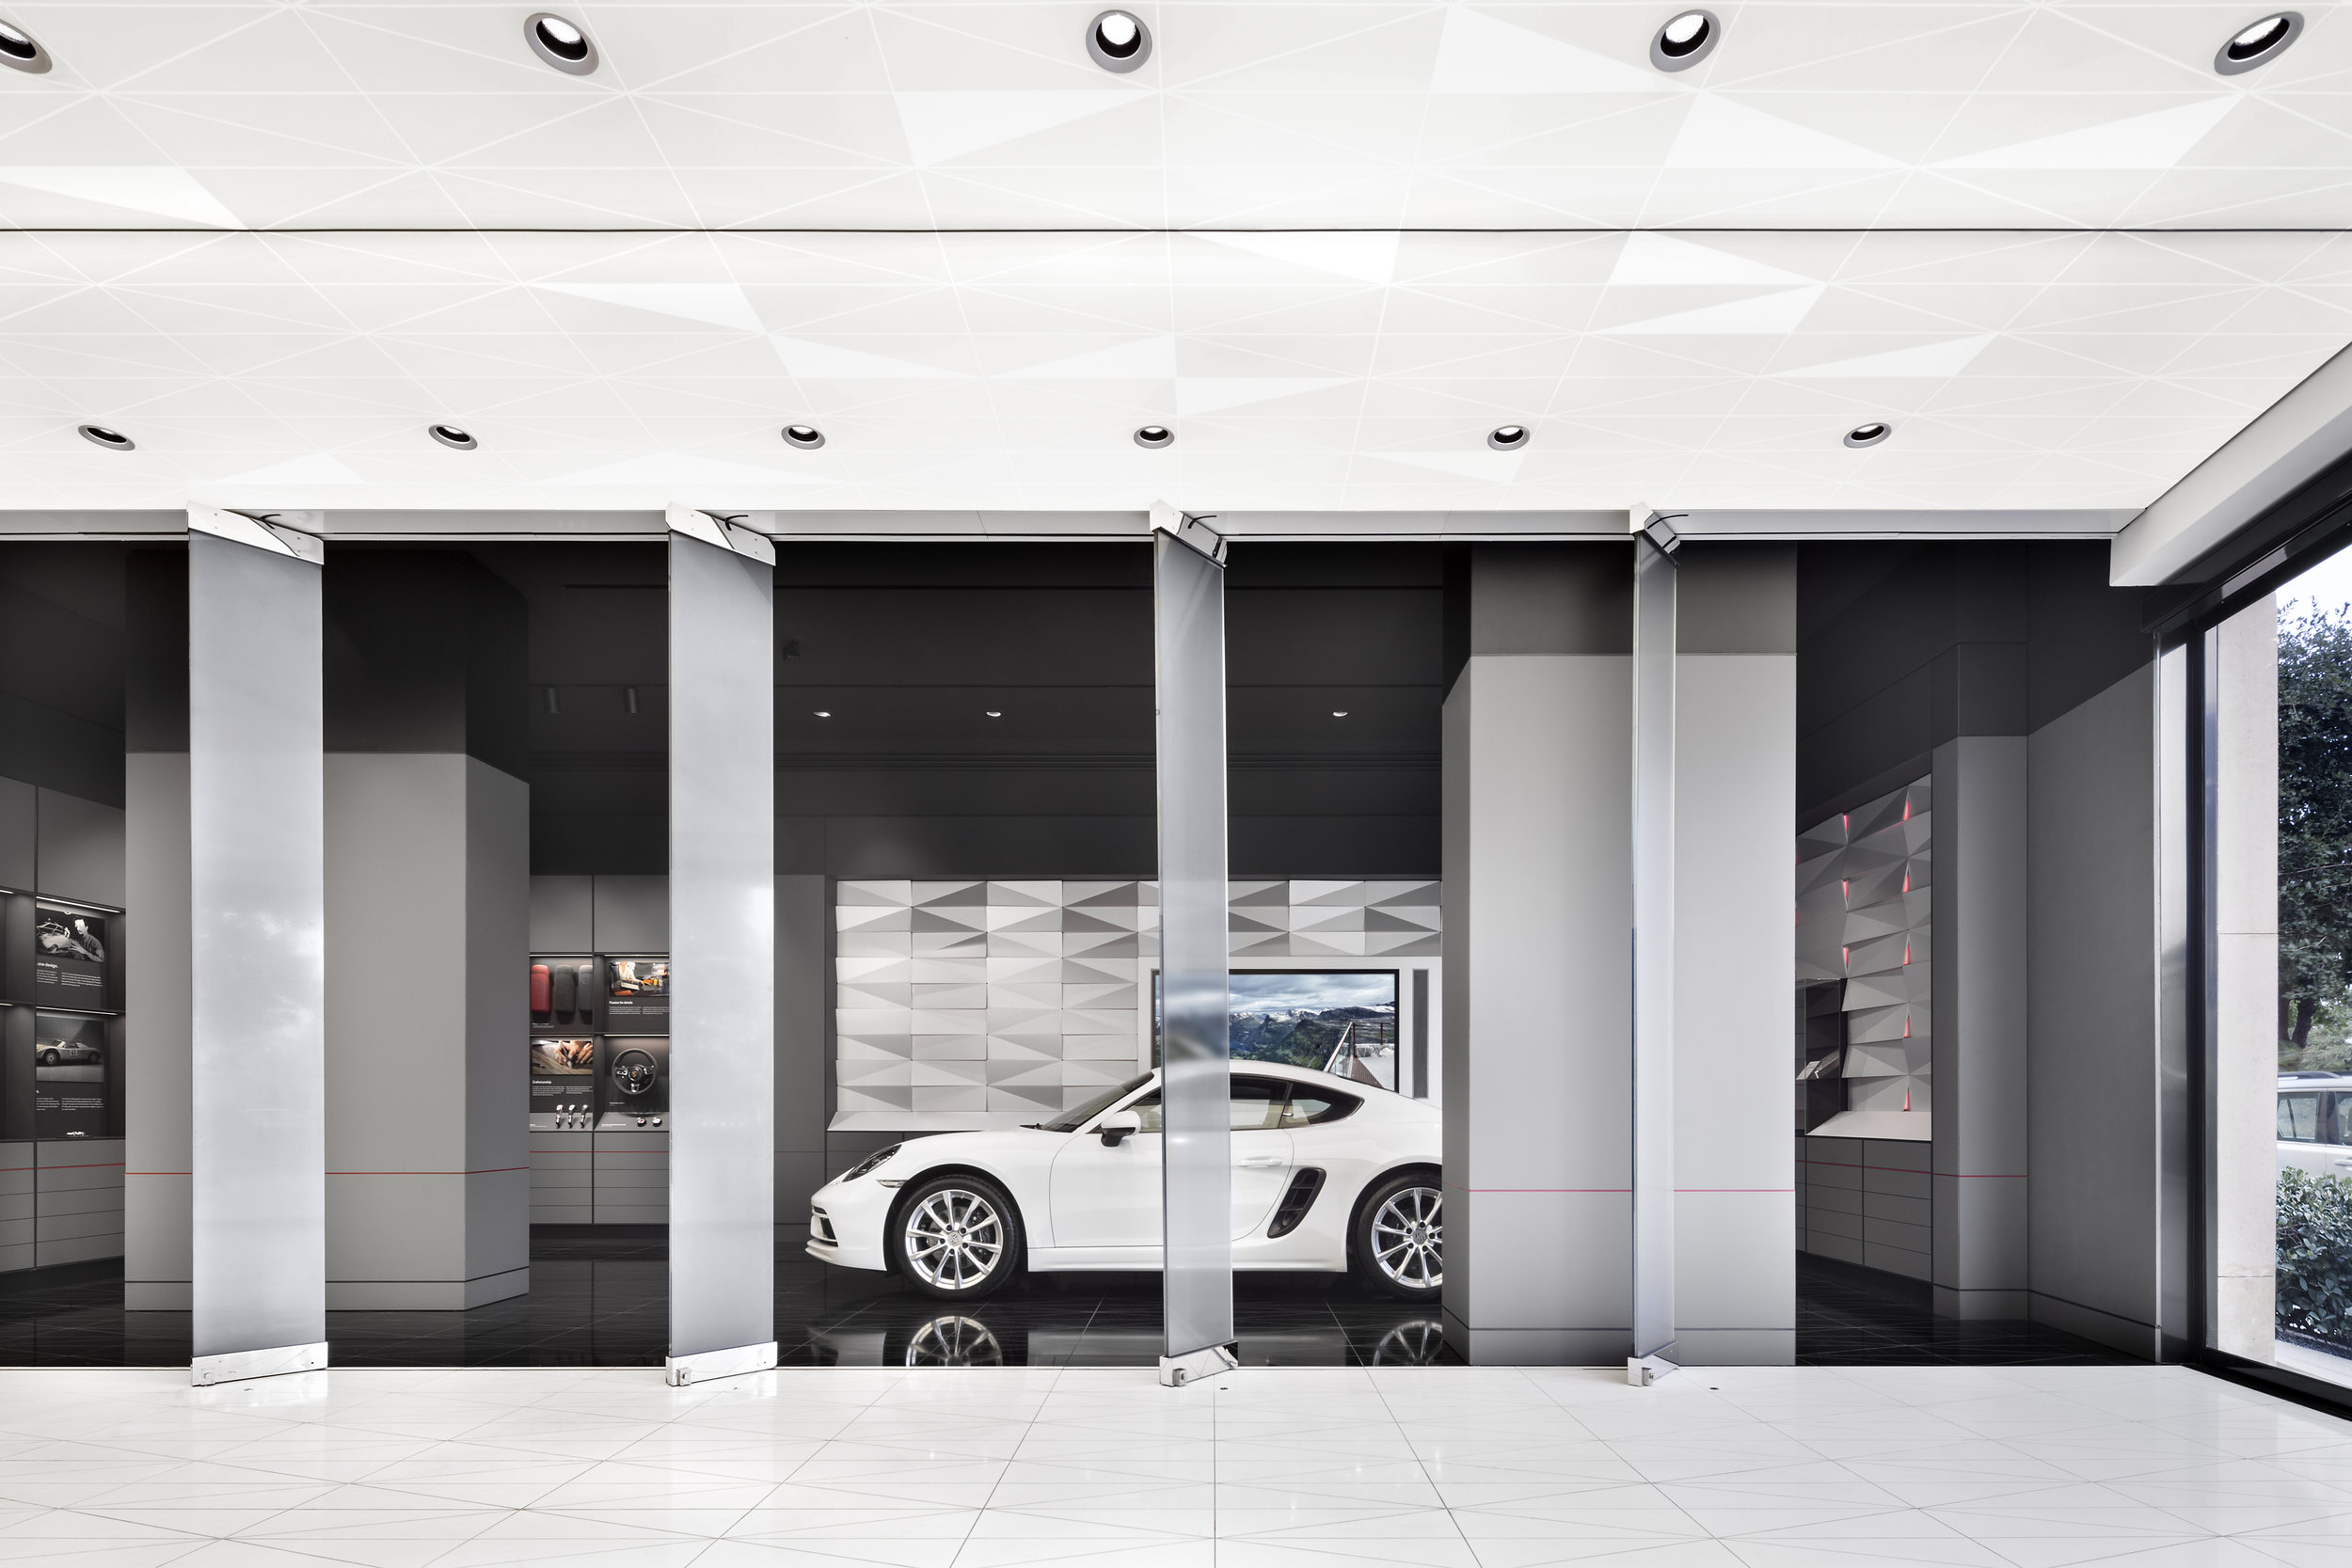 porsche-studio_retail-interior-design_coordination-berlin_08a.jpg